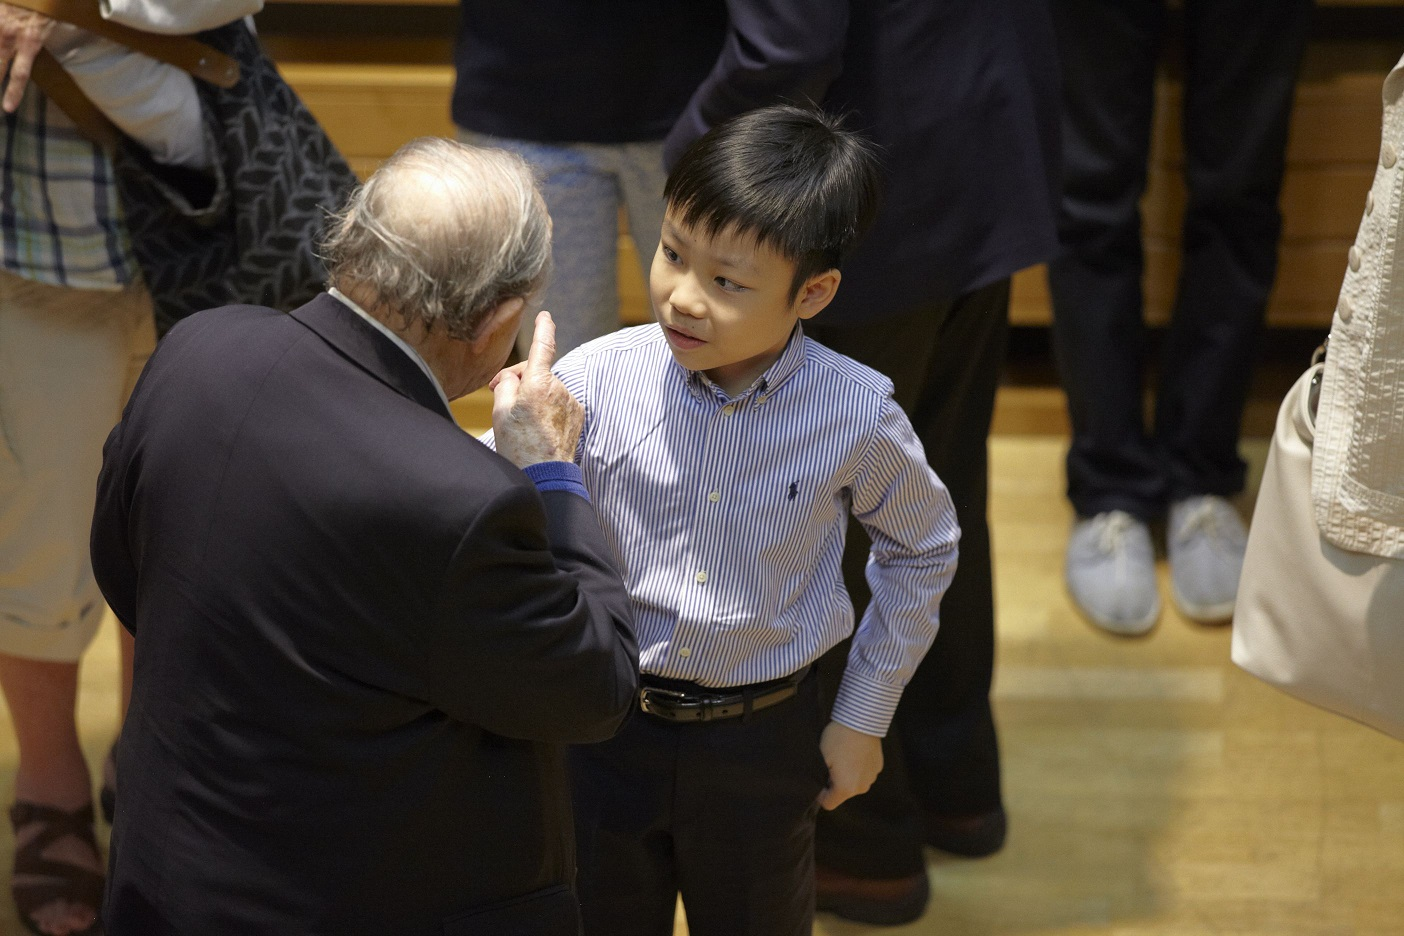 Menahem Pressler with a young student